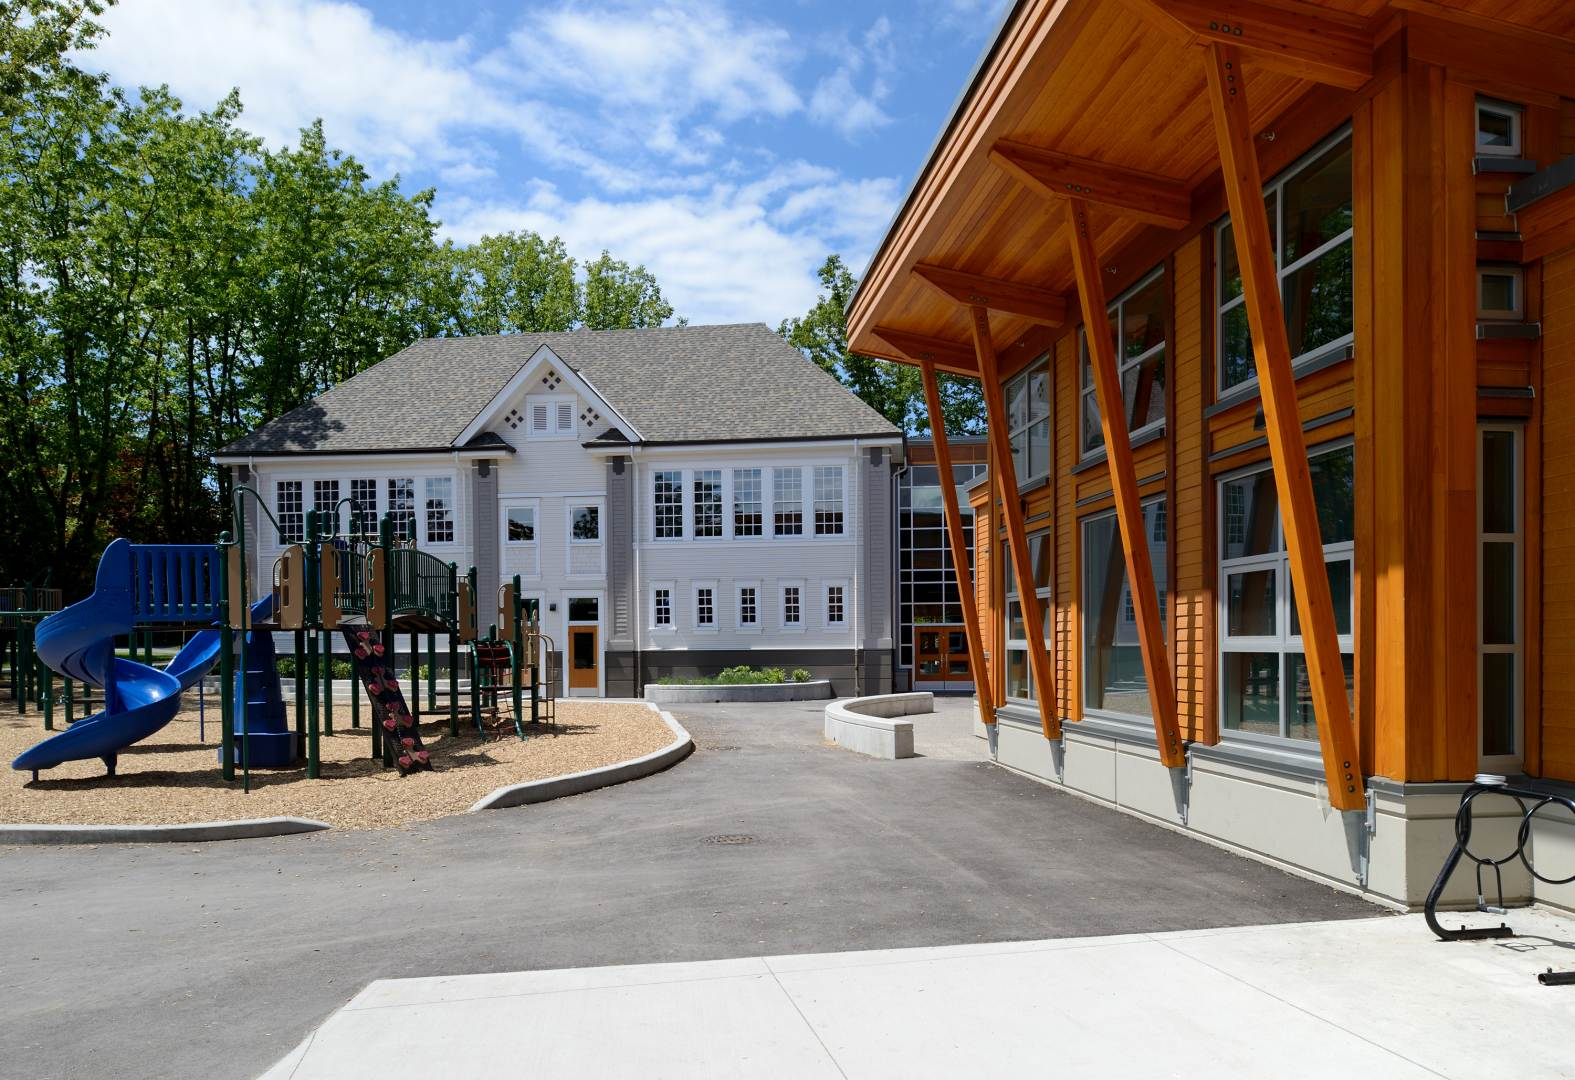 Lord Kitchener Elementary School